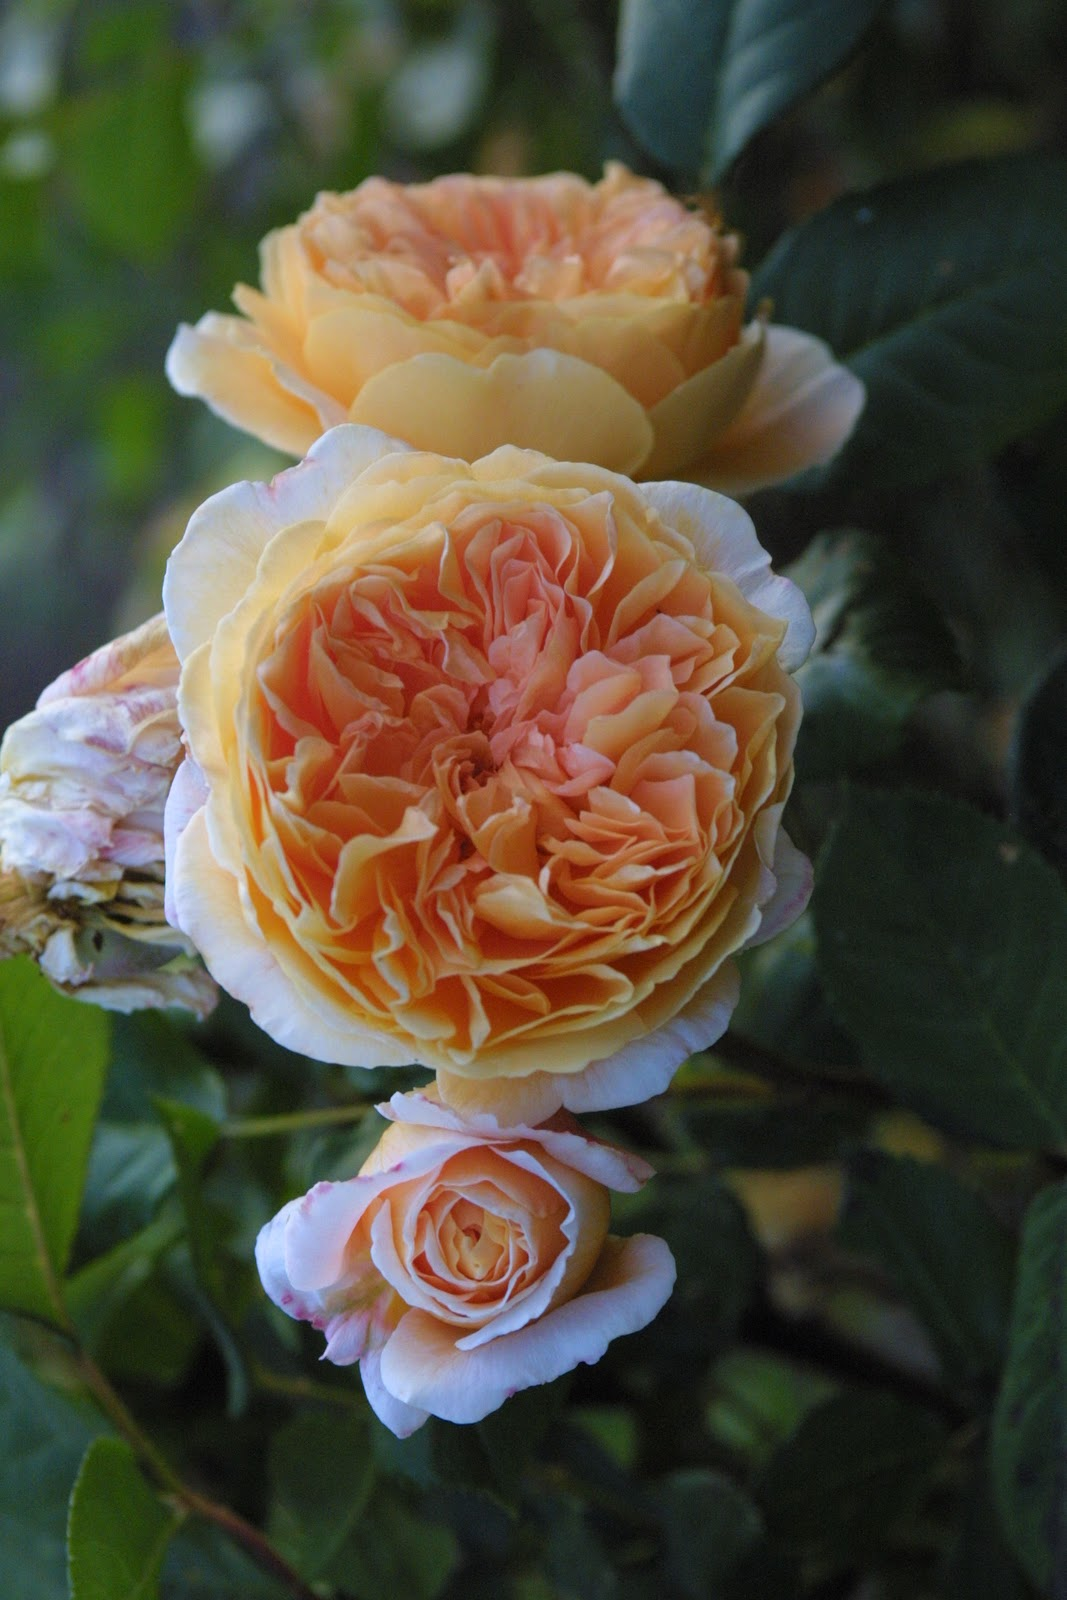 Roses In Garden: For The Love Of Roses